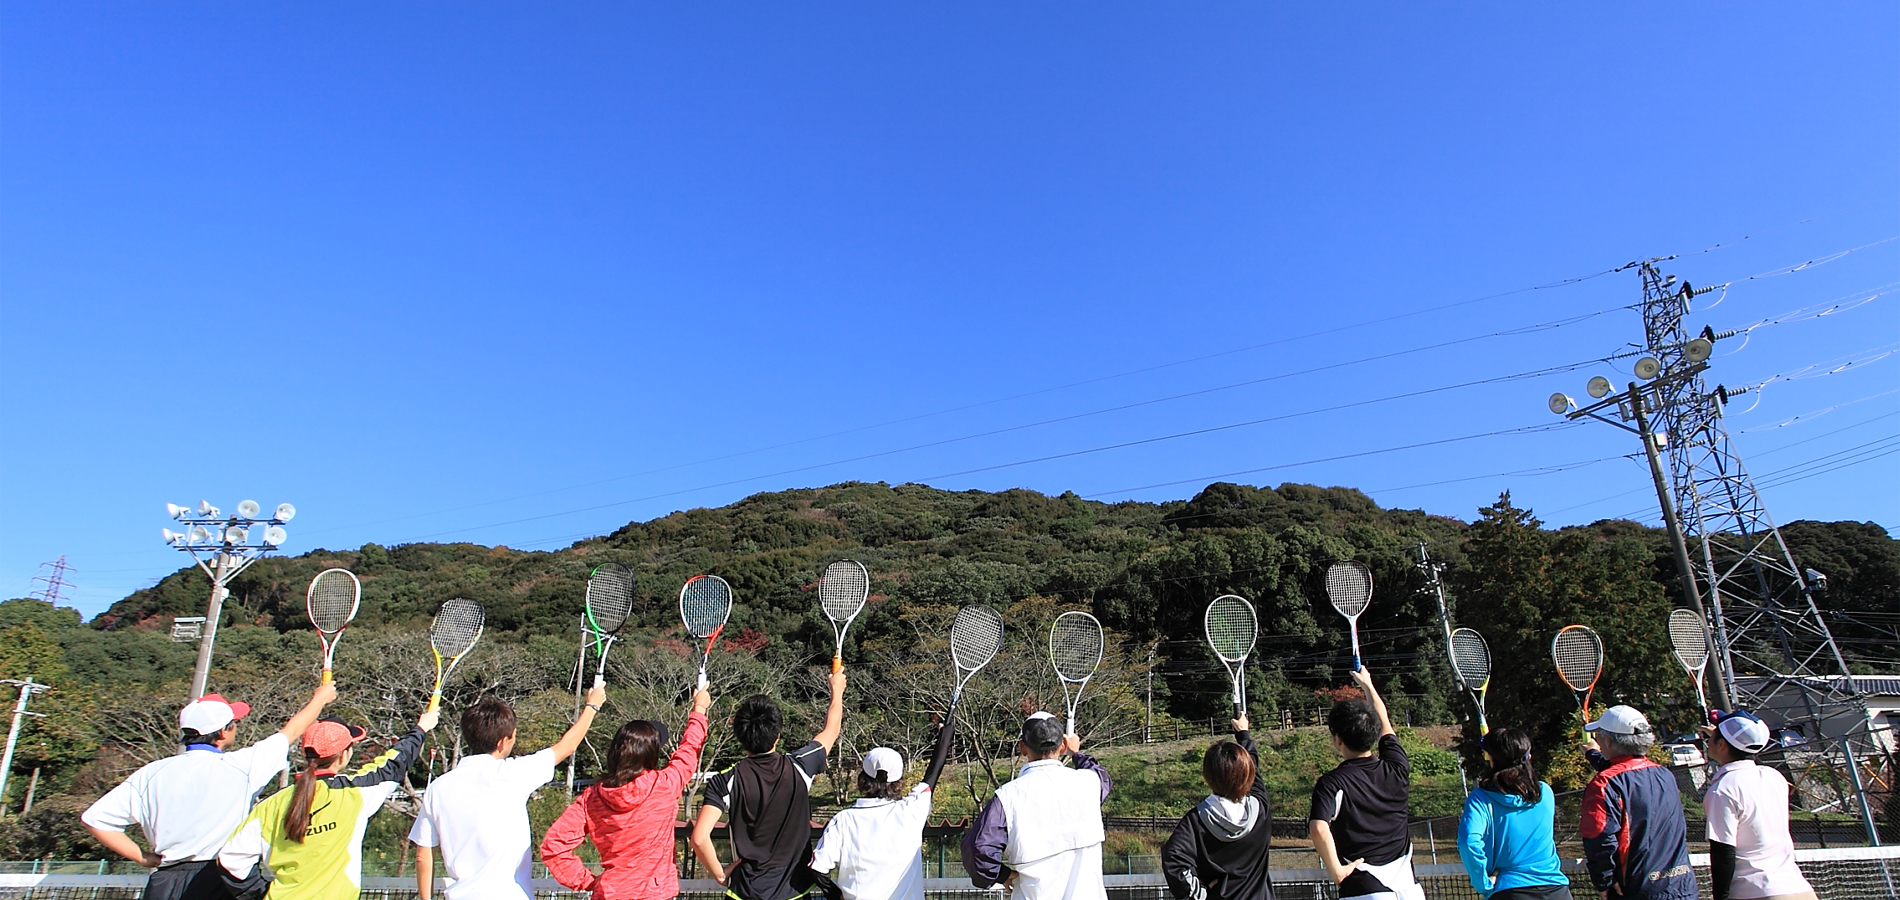 - Every day enjoyable with soft tennis -